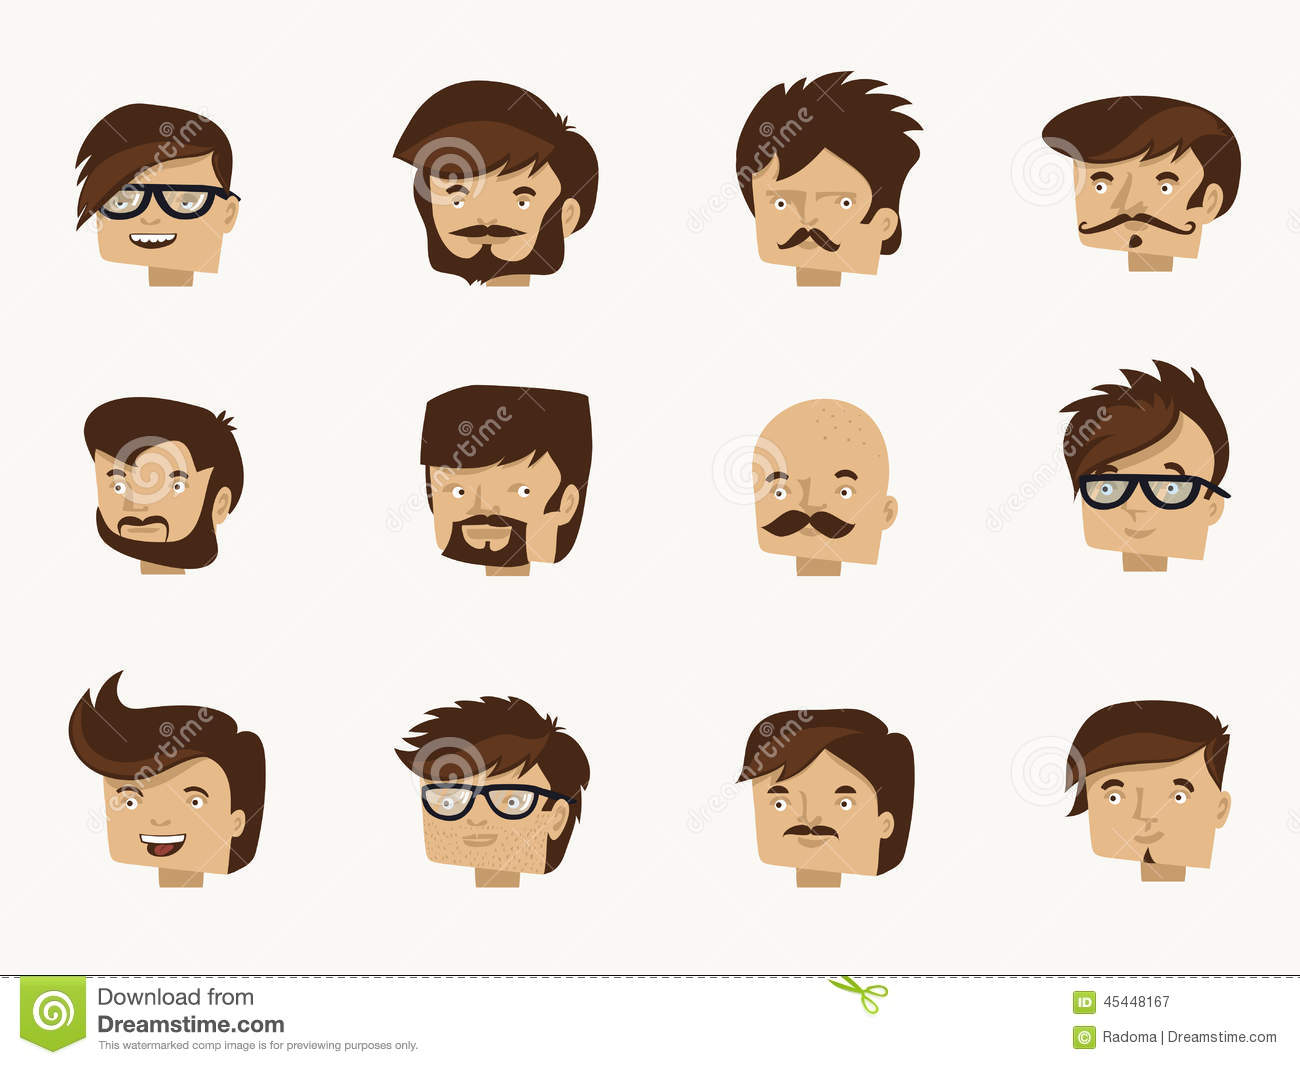 Character Design Face Shapes : Character design faces pixshark images